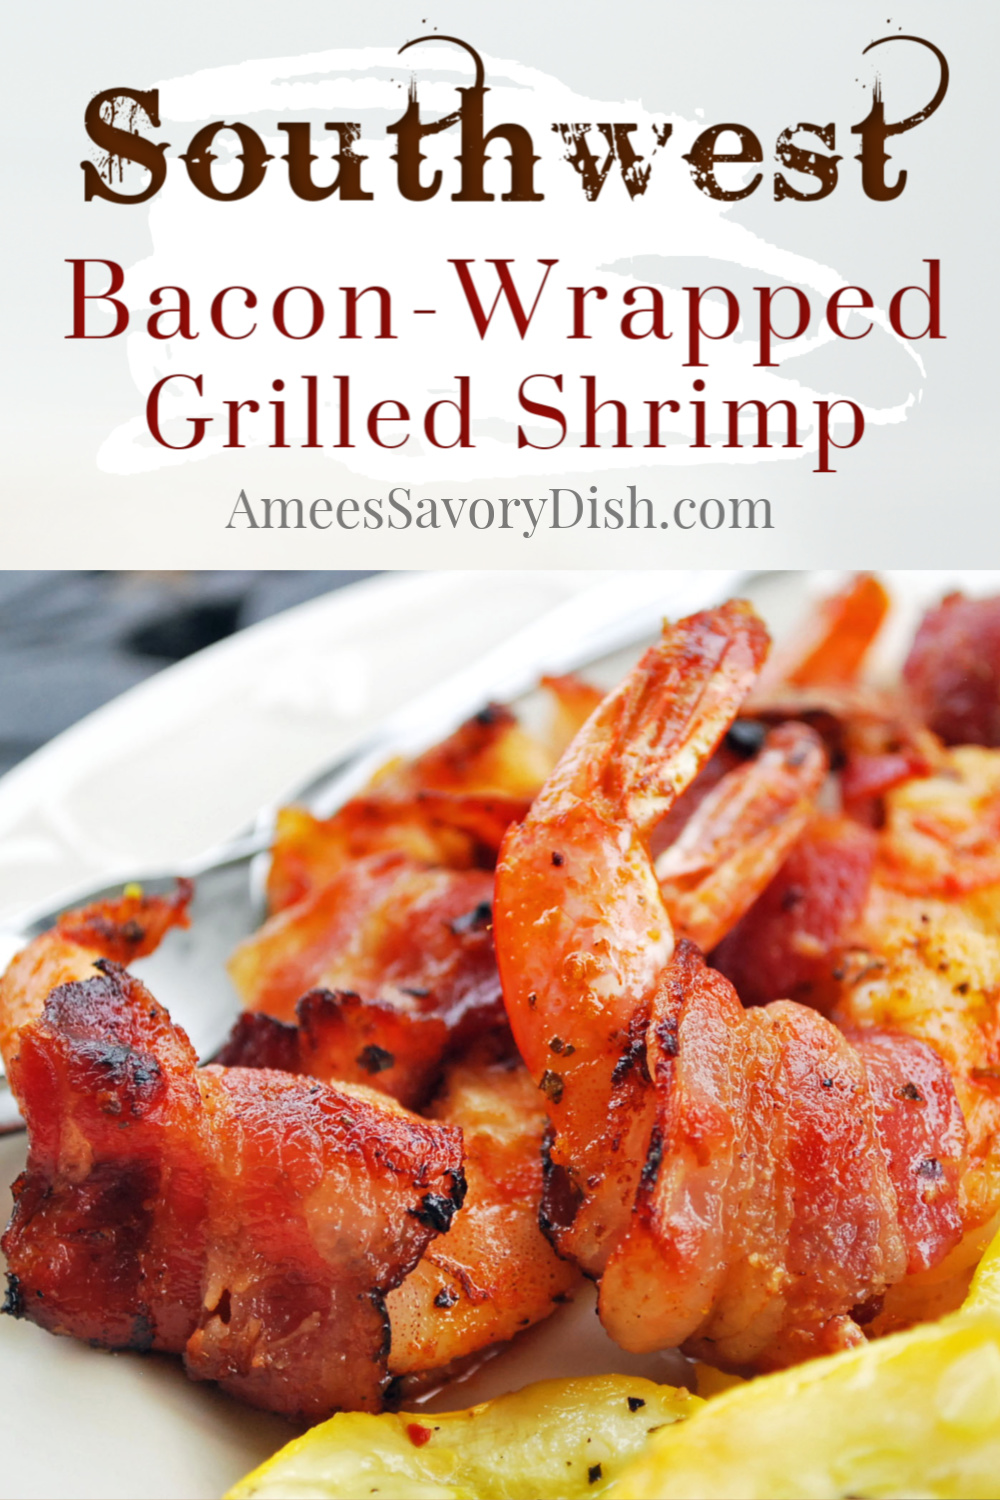 Southwest bacon-wrapped grilled shrimp is SO flavorful and simple to make! The perfect summer grilling recipe that's and gluten-free, low-carb, keto diet-friendly and crazy delicious. #grilledshrimp #southwestshrimp #shrimprecipe via @Ameecooks